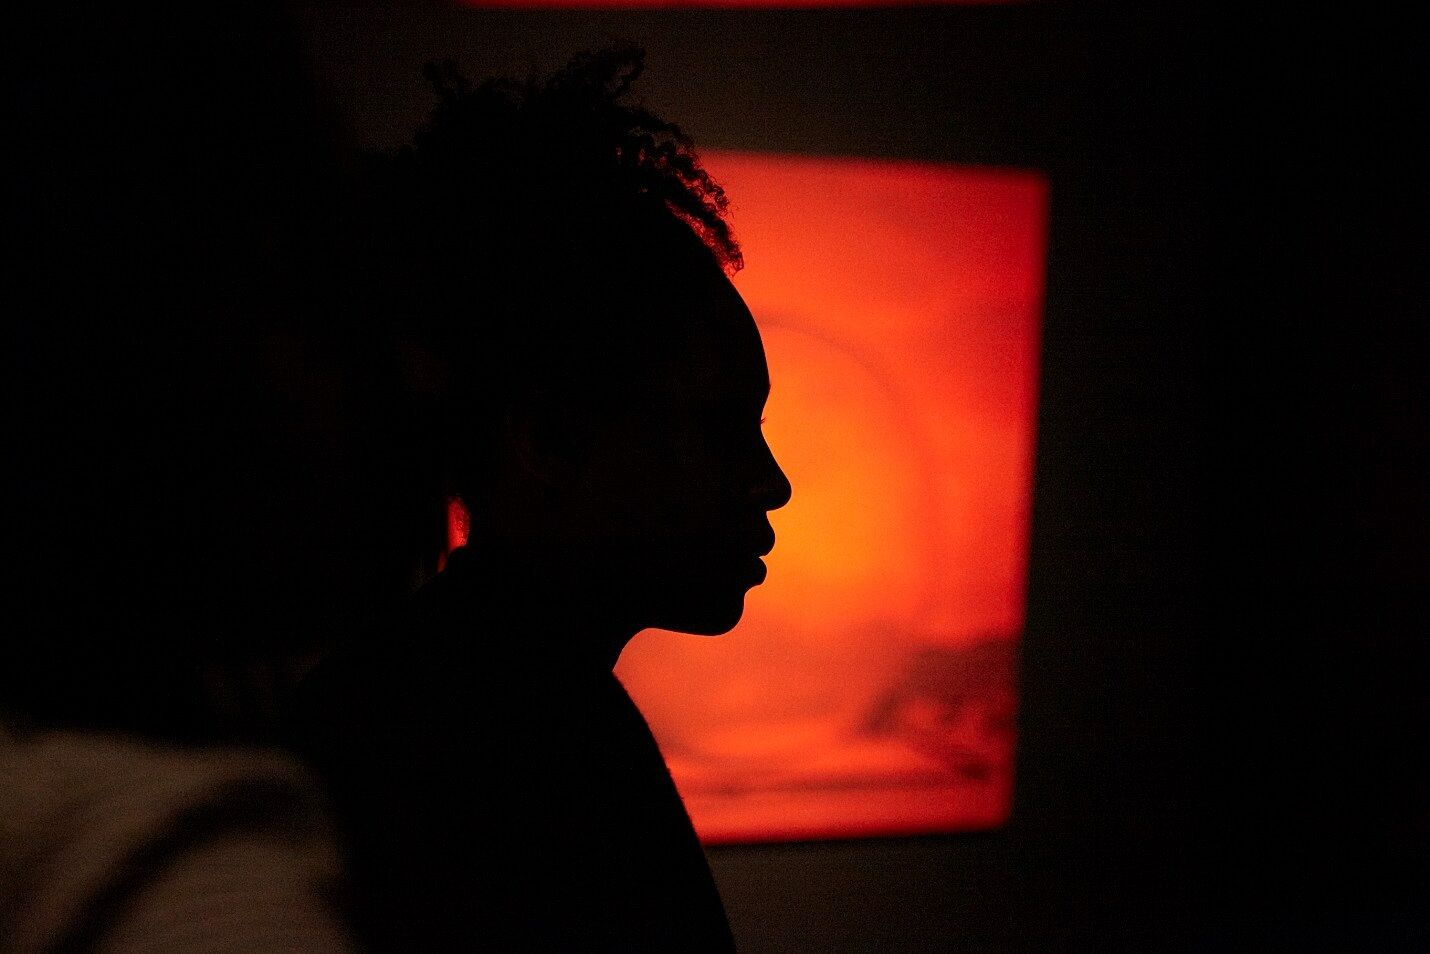 profile of a womans face with orange light